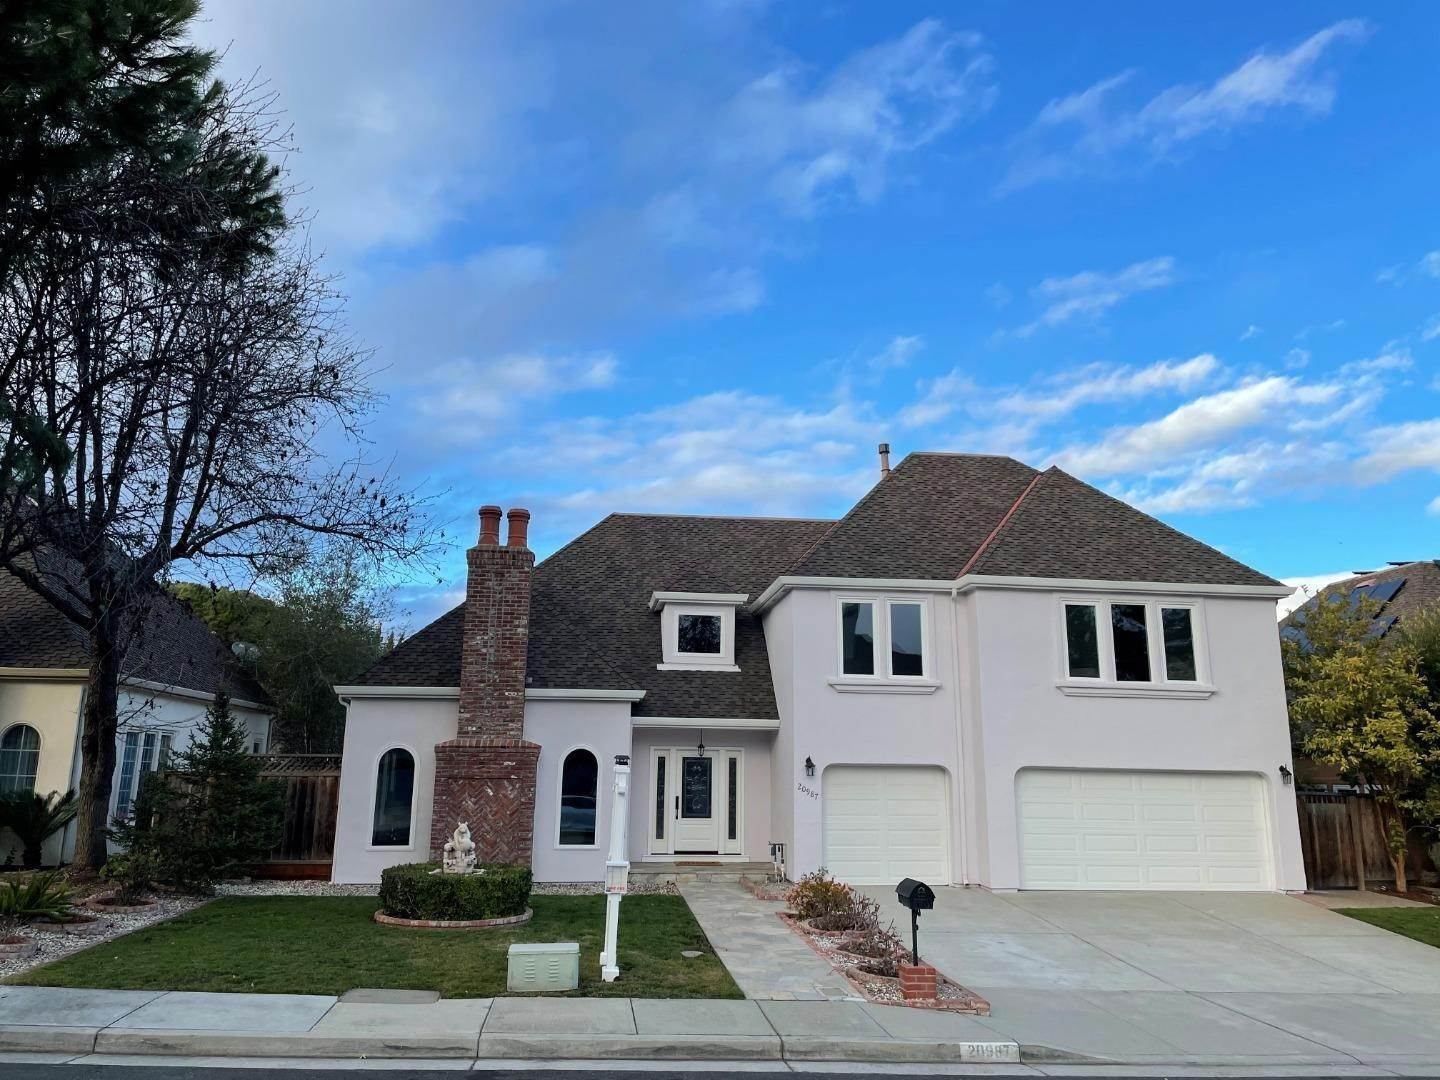 Single Family Homes for Sale at 20987 Fairwoods Court Cupertino, California 95014 United States